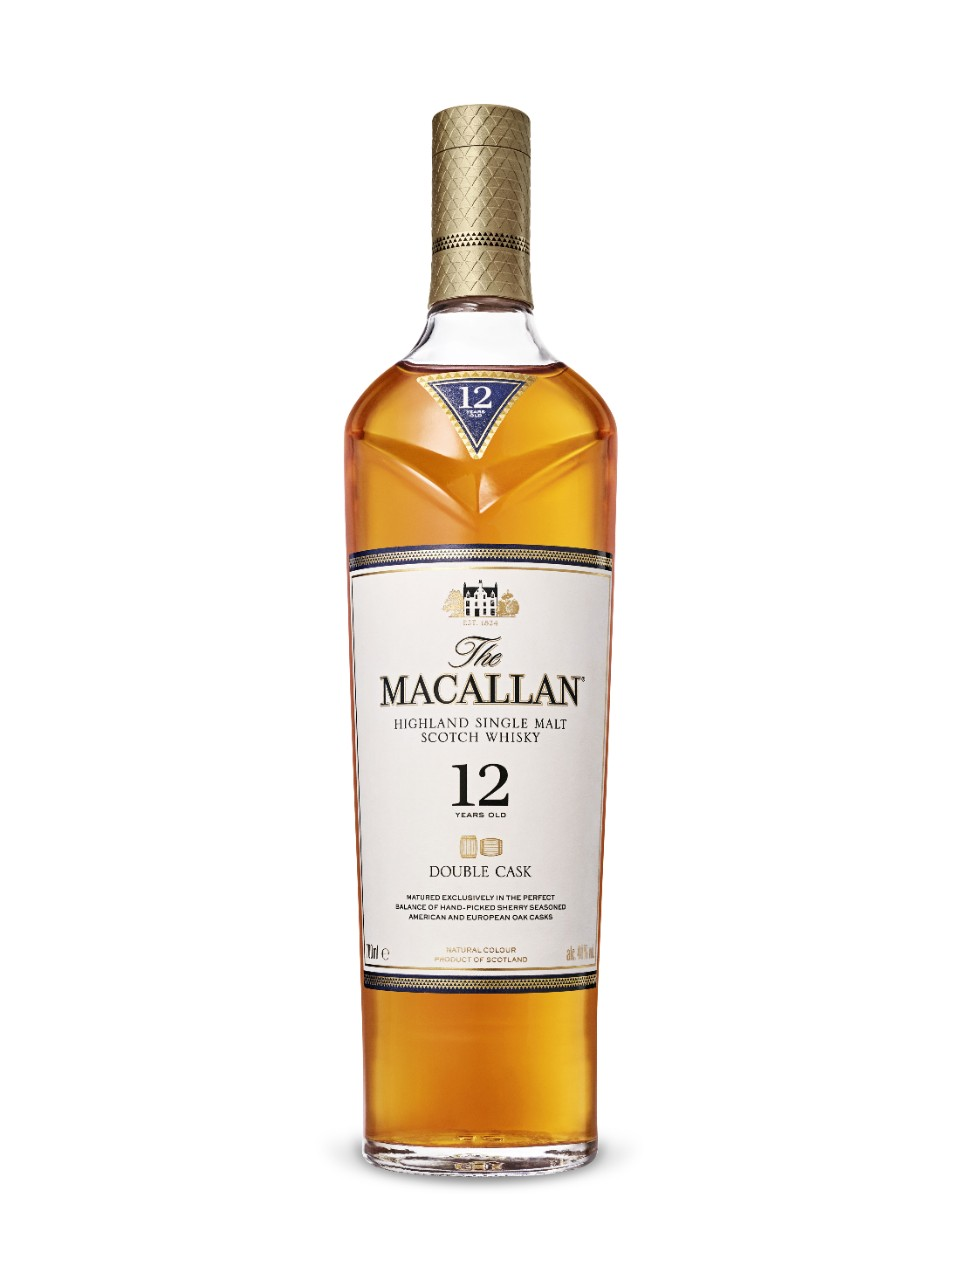 2. Scotch Whisky – The Macallan Sherry Oak 12 Years Old